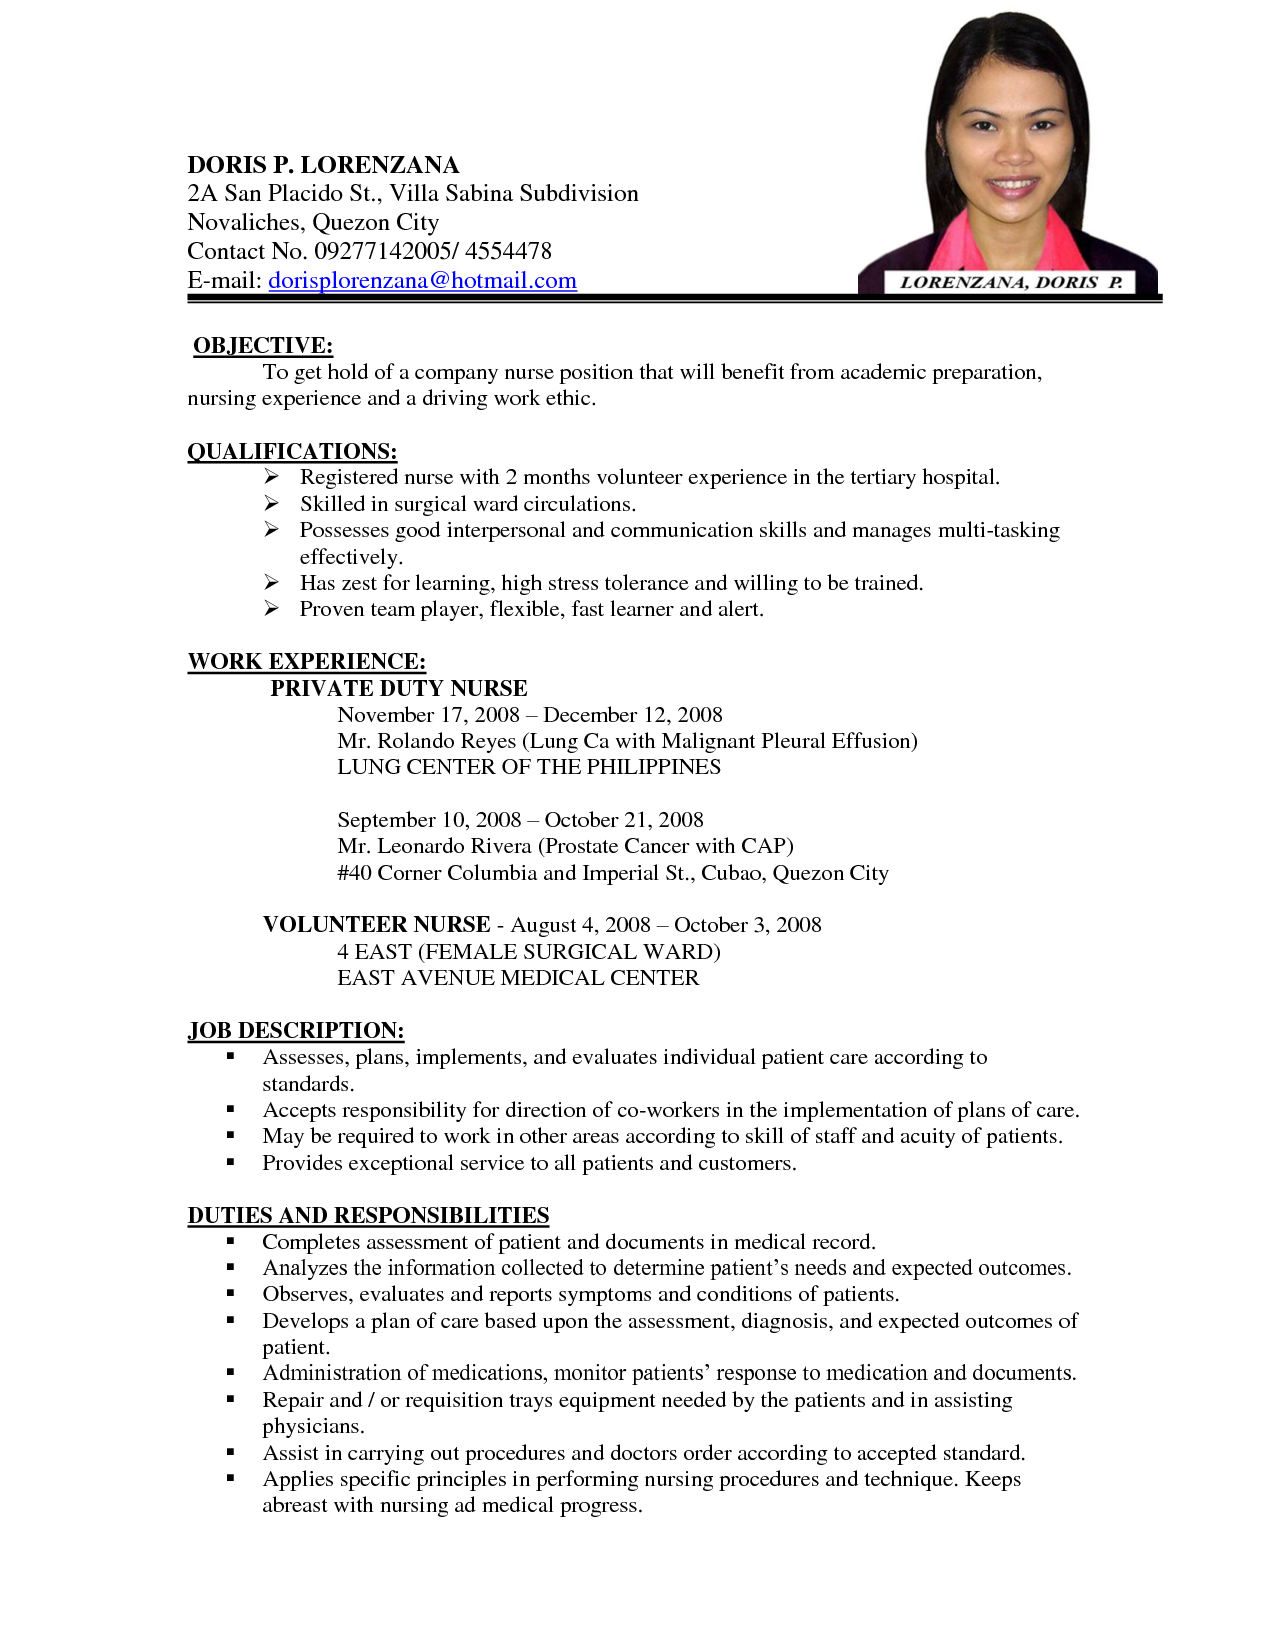 nursing curriculum vitae examples - Google Search | tt | Pinterest